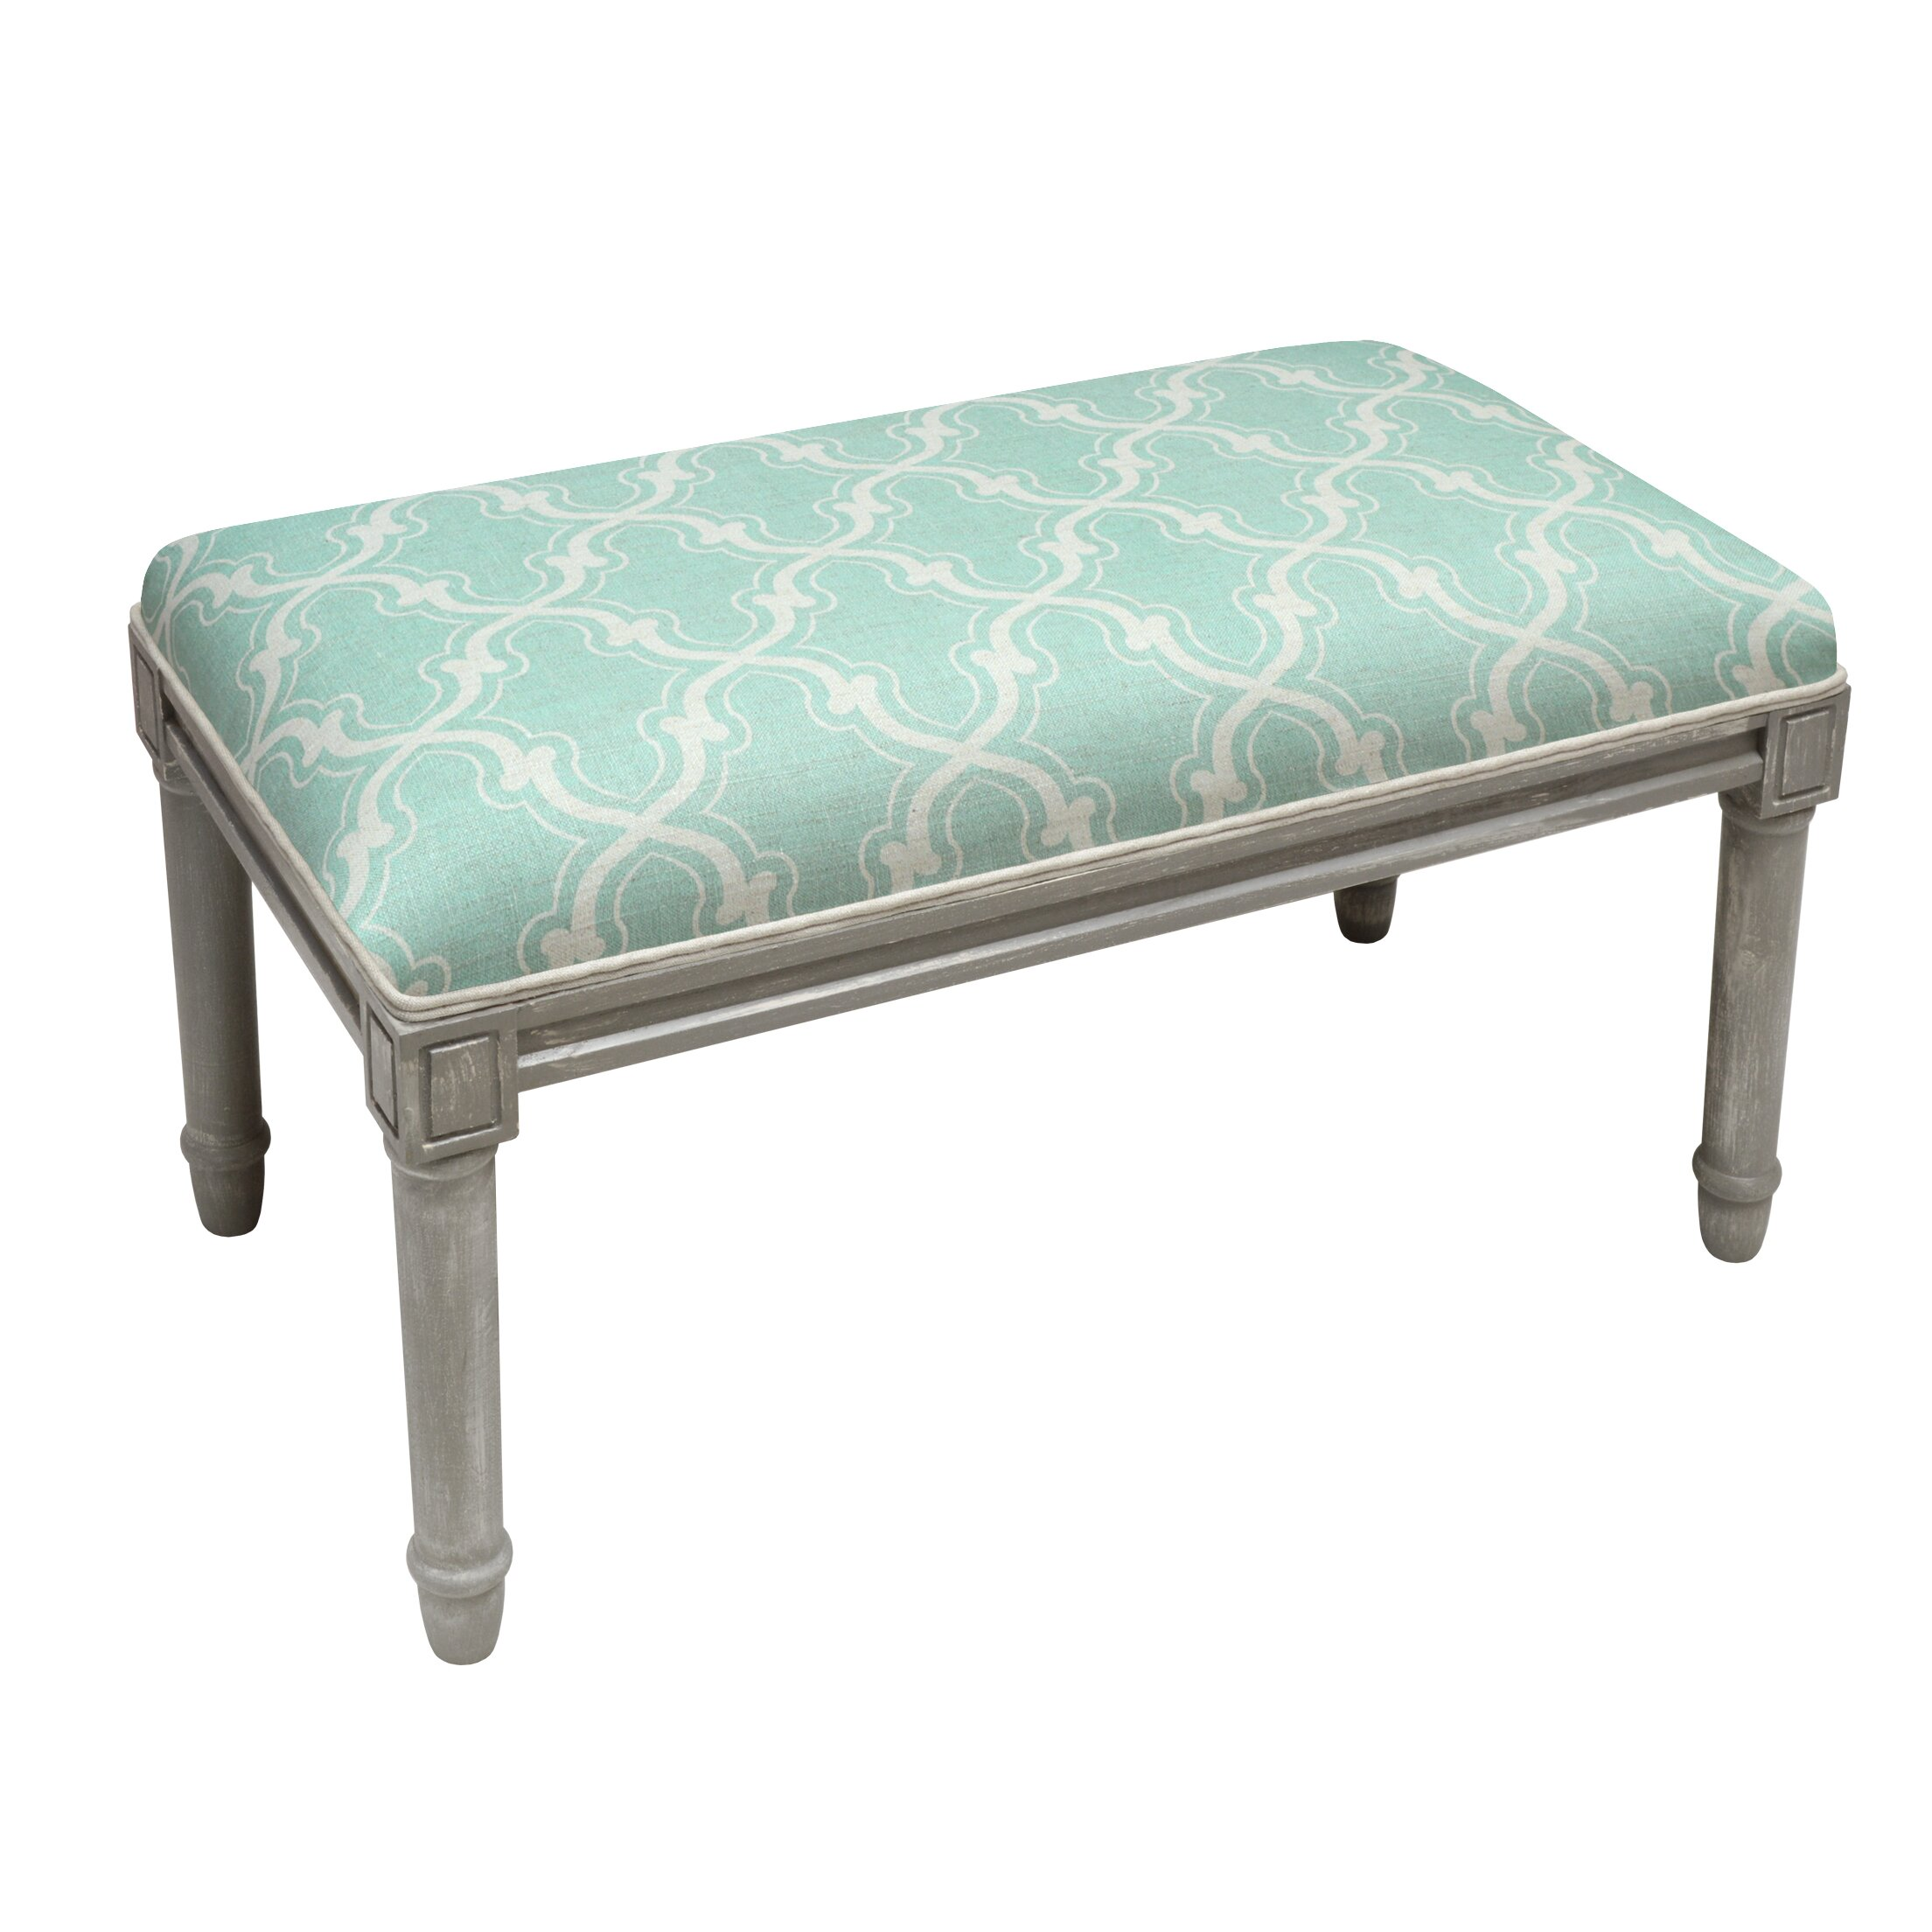 123 creations upholstered entryway bench wayfair Upholstered benches